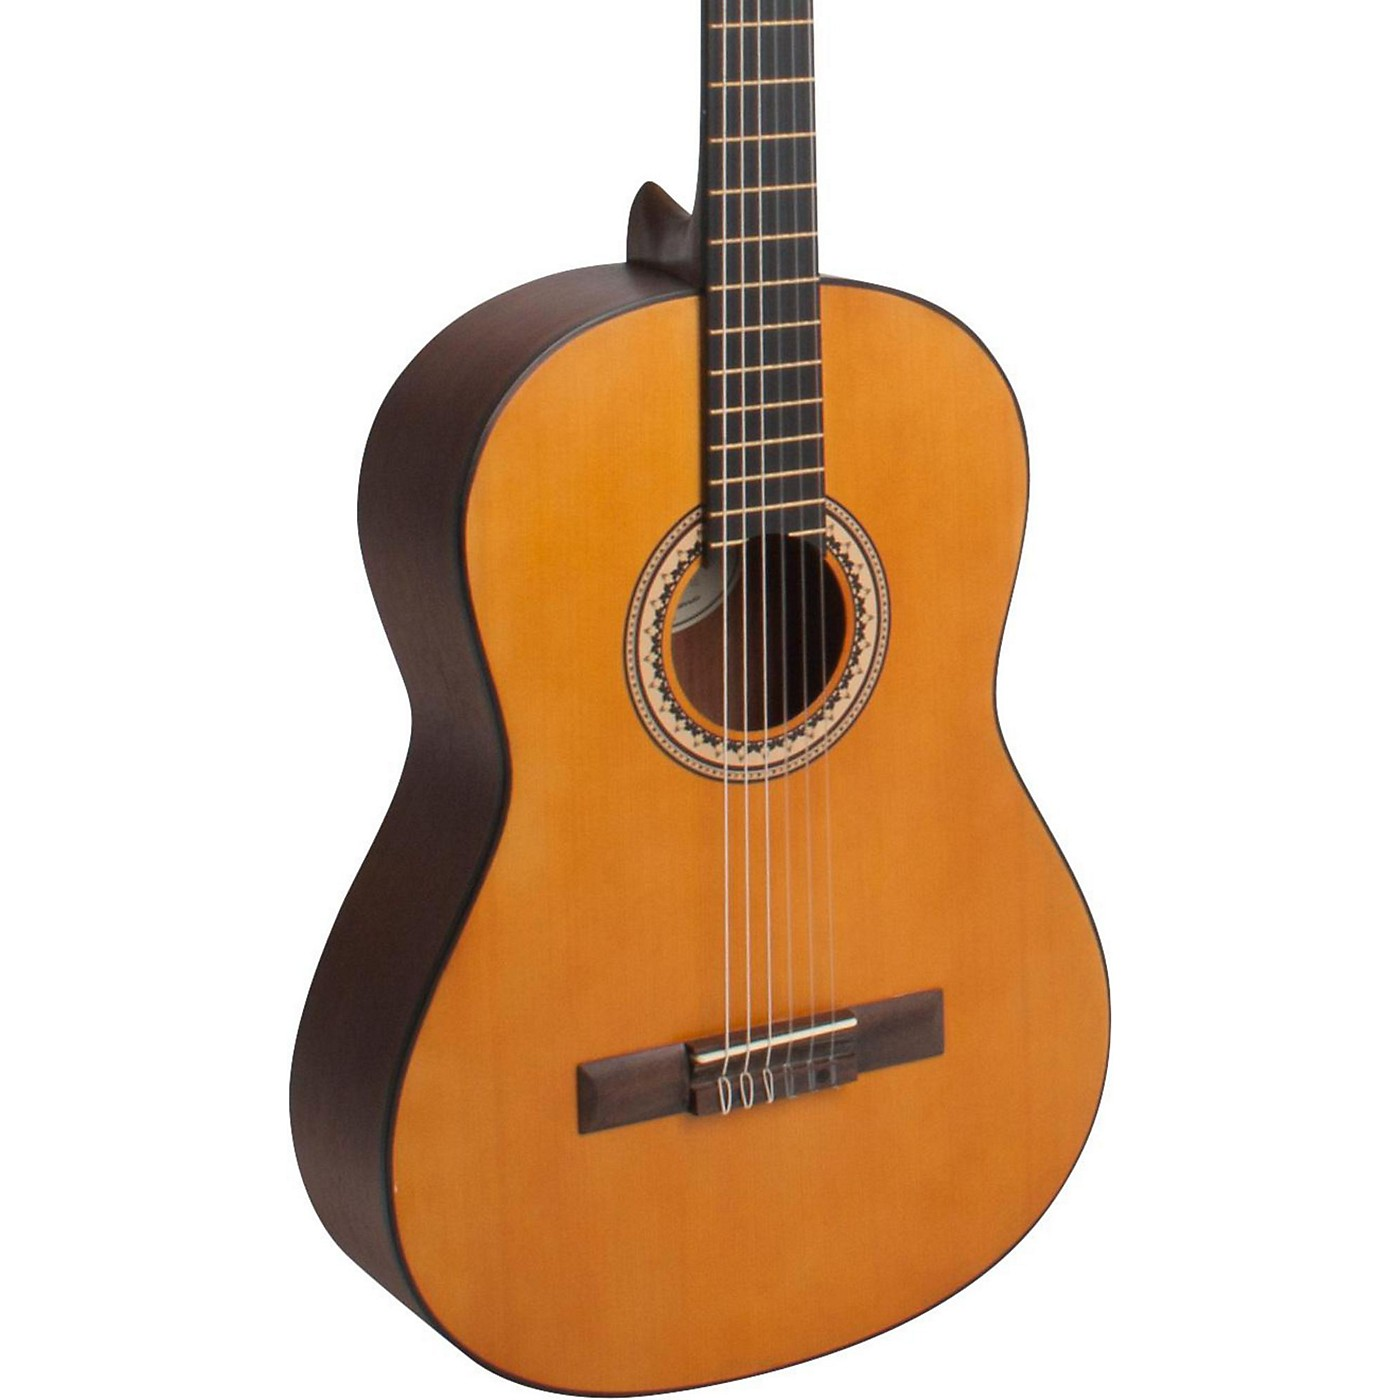 Valencia 200 Series Full Size Classical Acoustic Guitar thumbnail